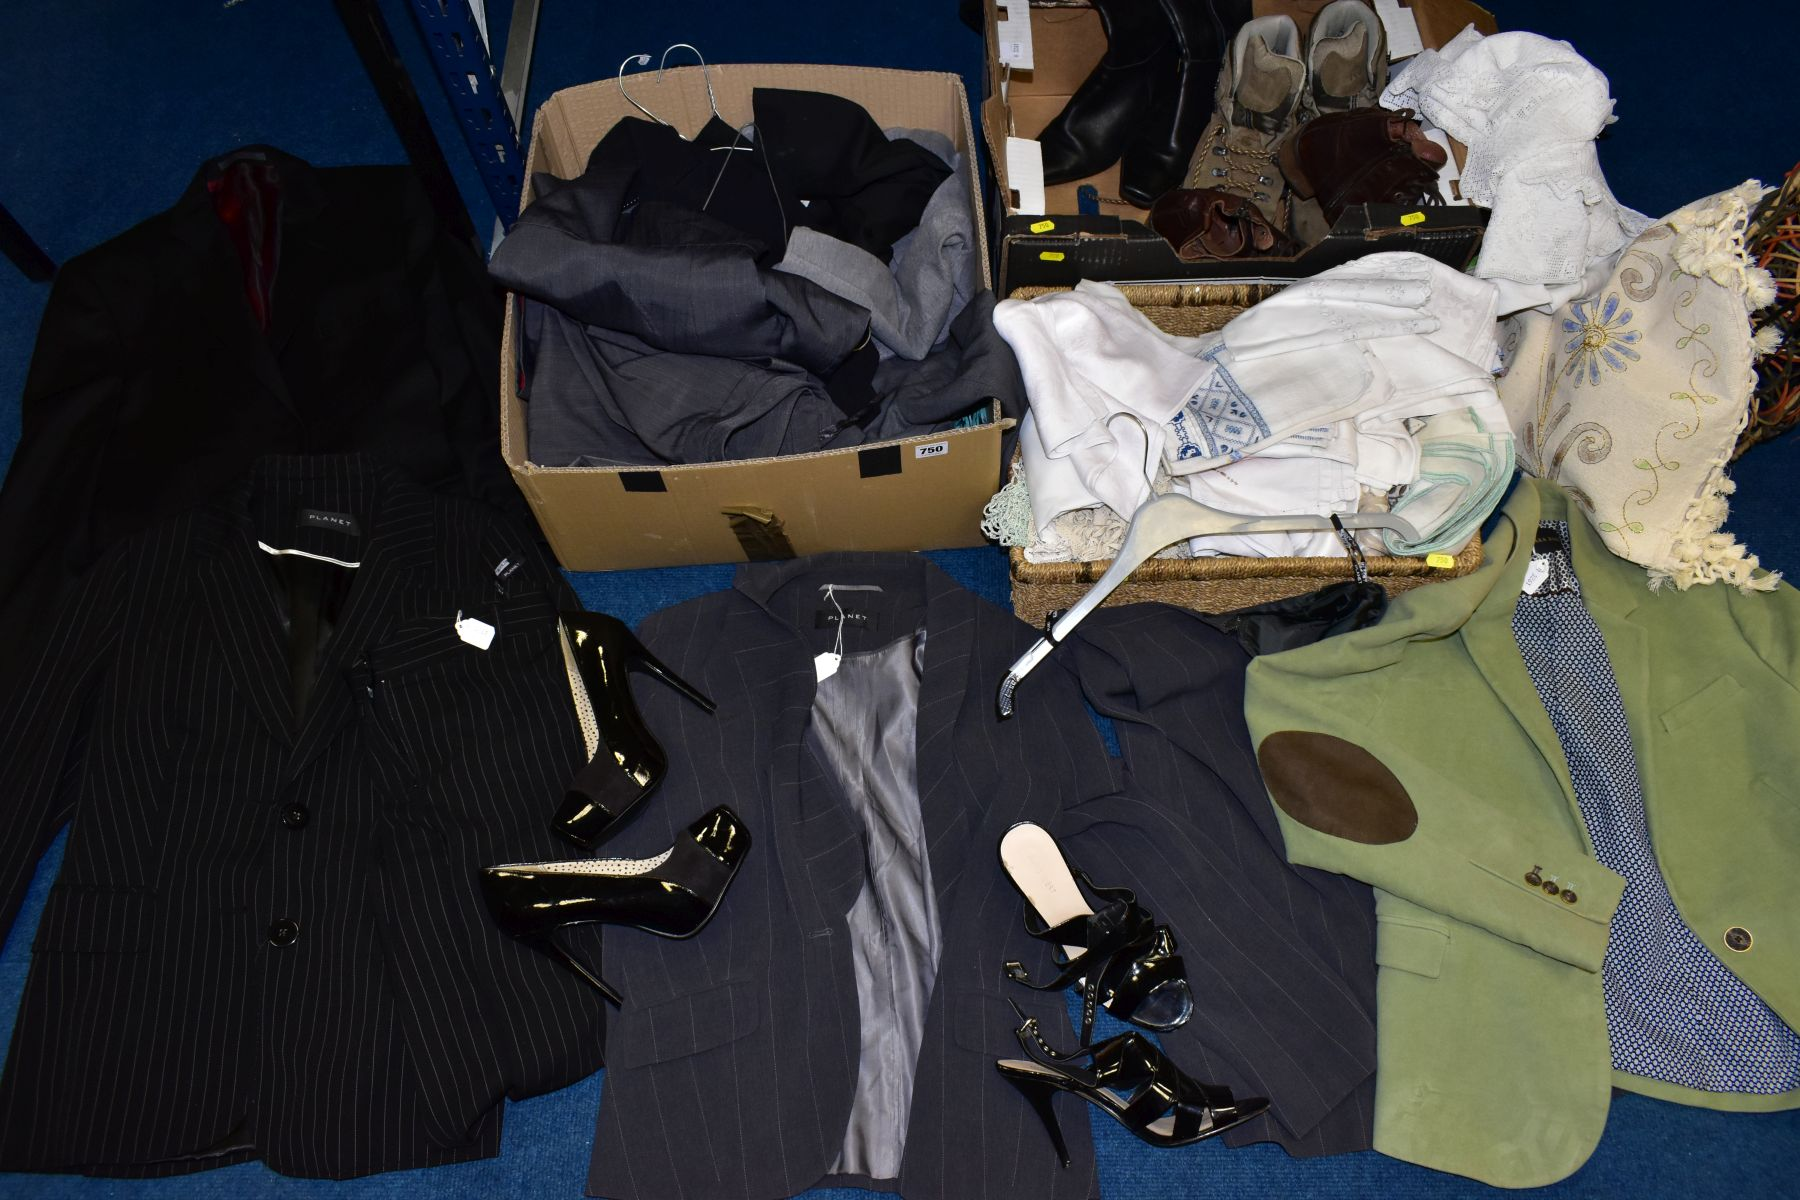 LADIES CLOTHING ETC, to include Planet trouser suit and jacket and skirt both size 12, Zara Basic